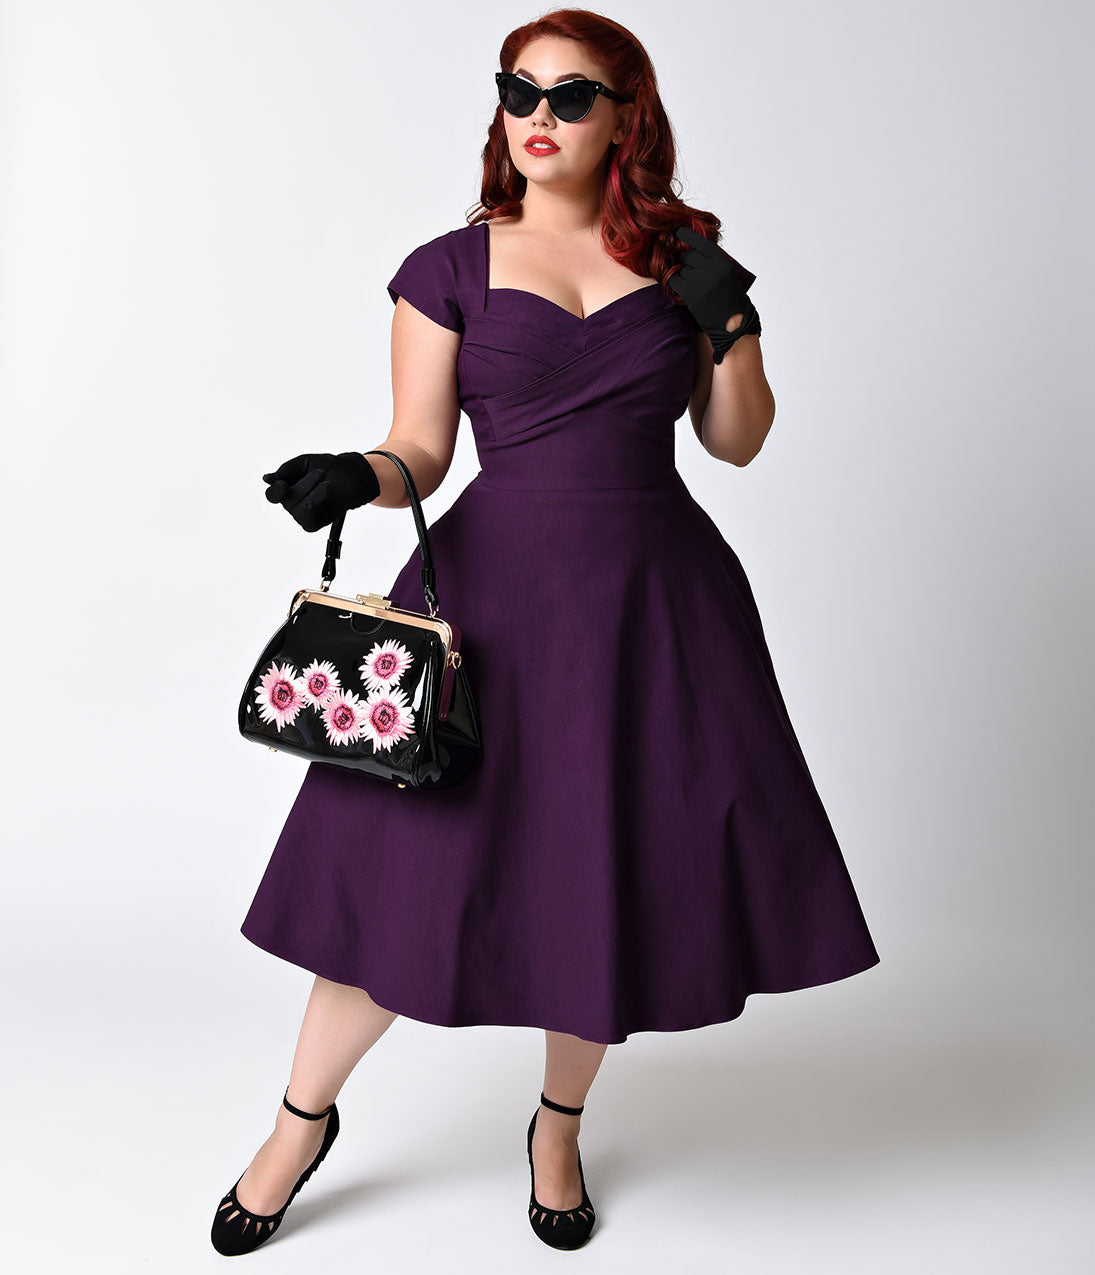 Vintage Bridesmaid Dress Ideas by Decade Stop Staring Plus Size Mad Style Eggplant Cap Sleeve Swing Dress $178.00 AT vintagedancer.com